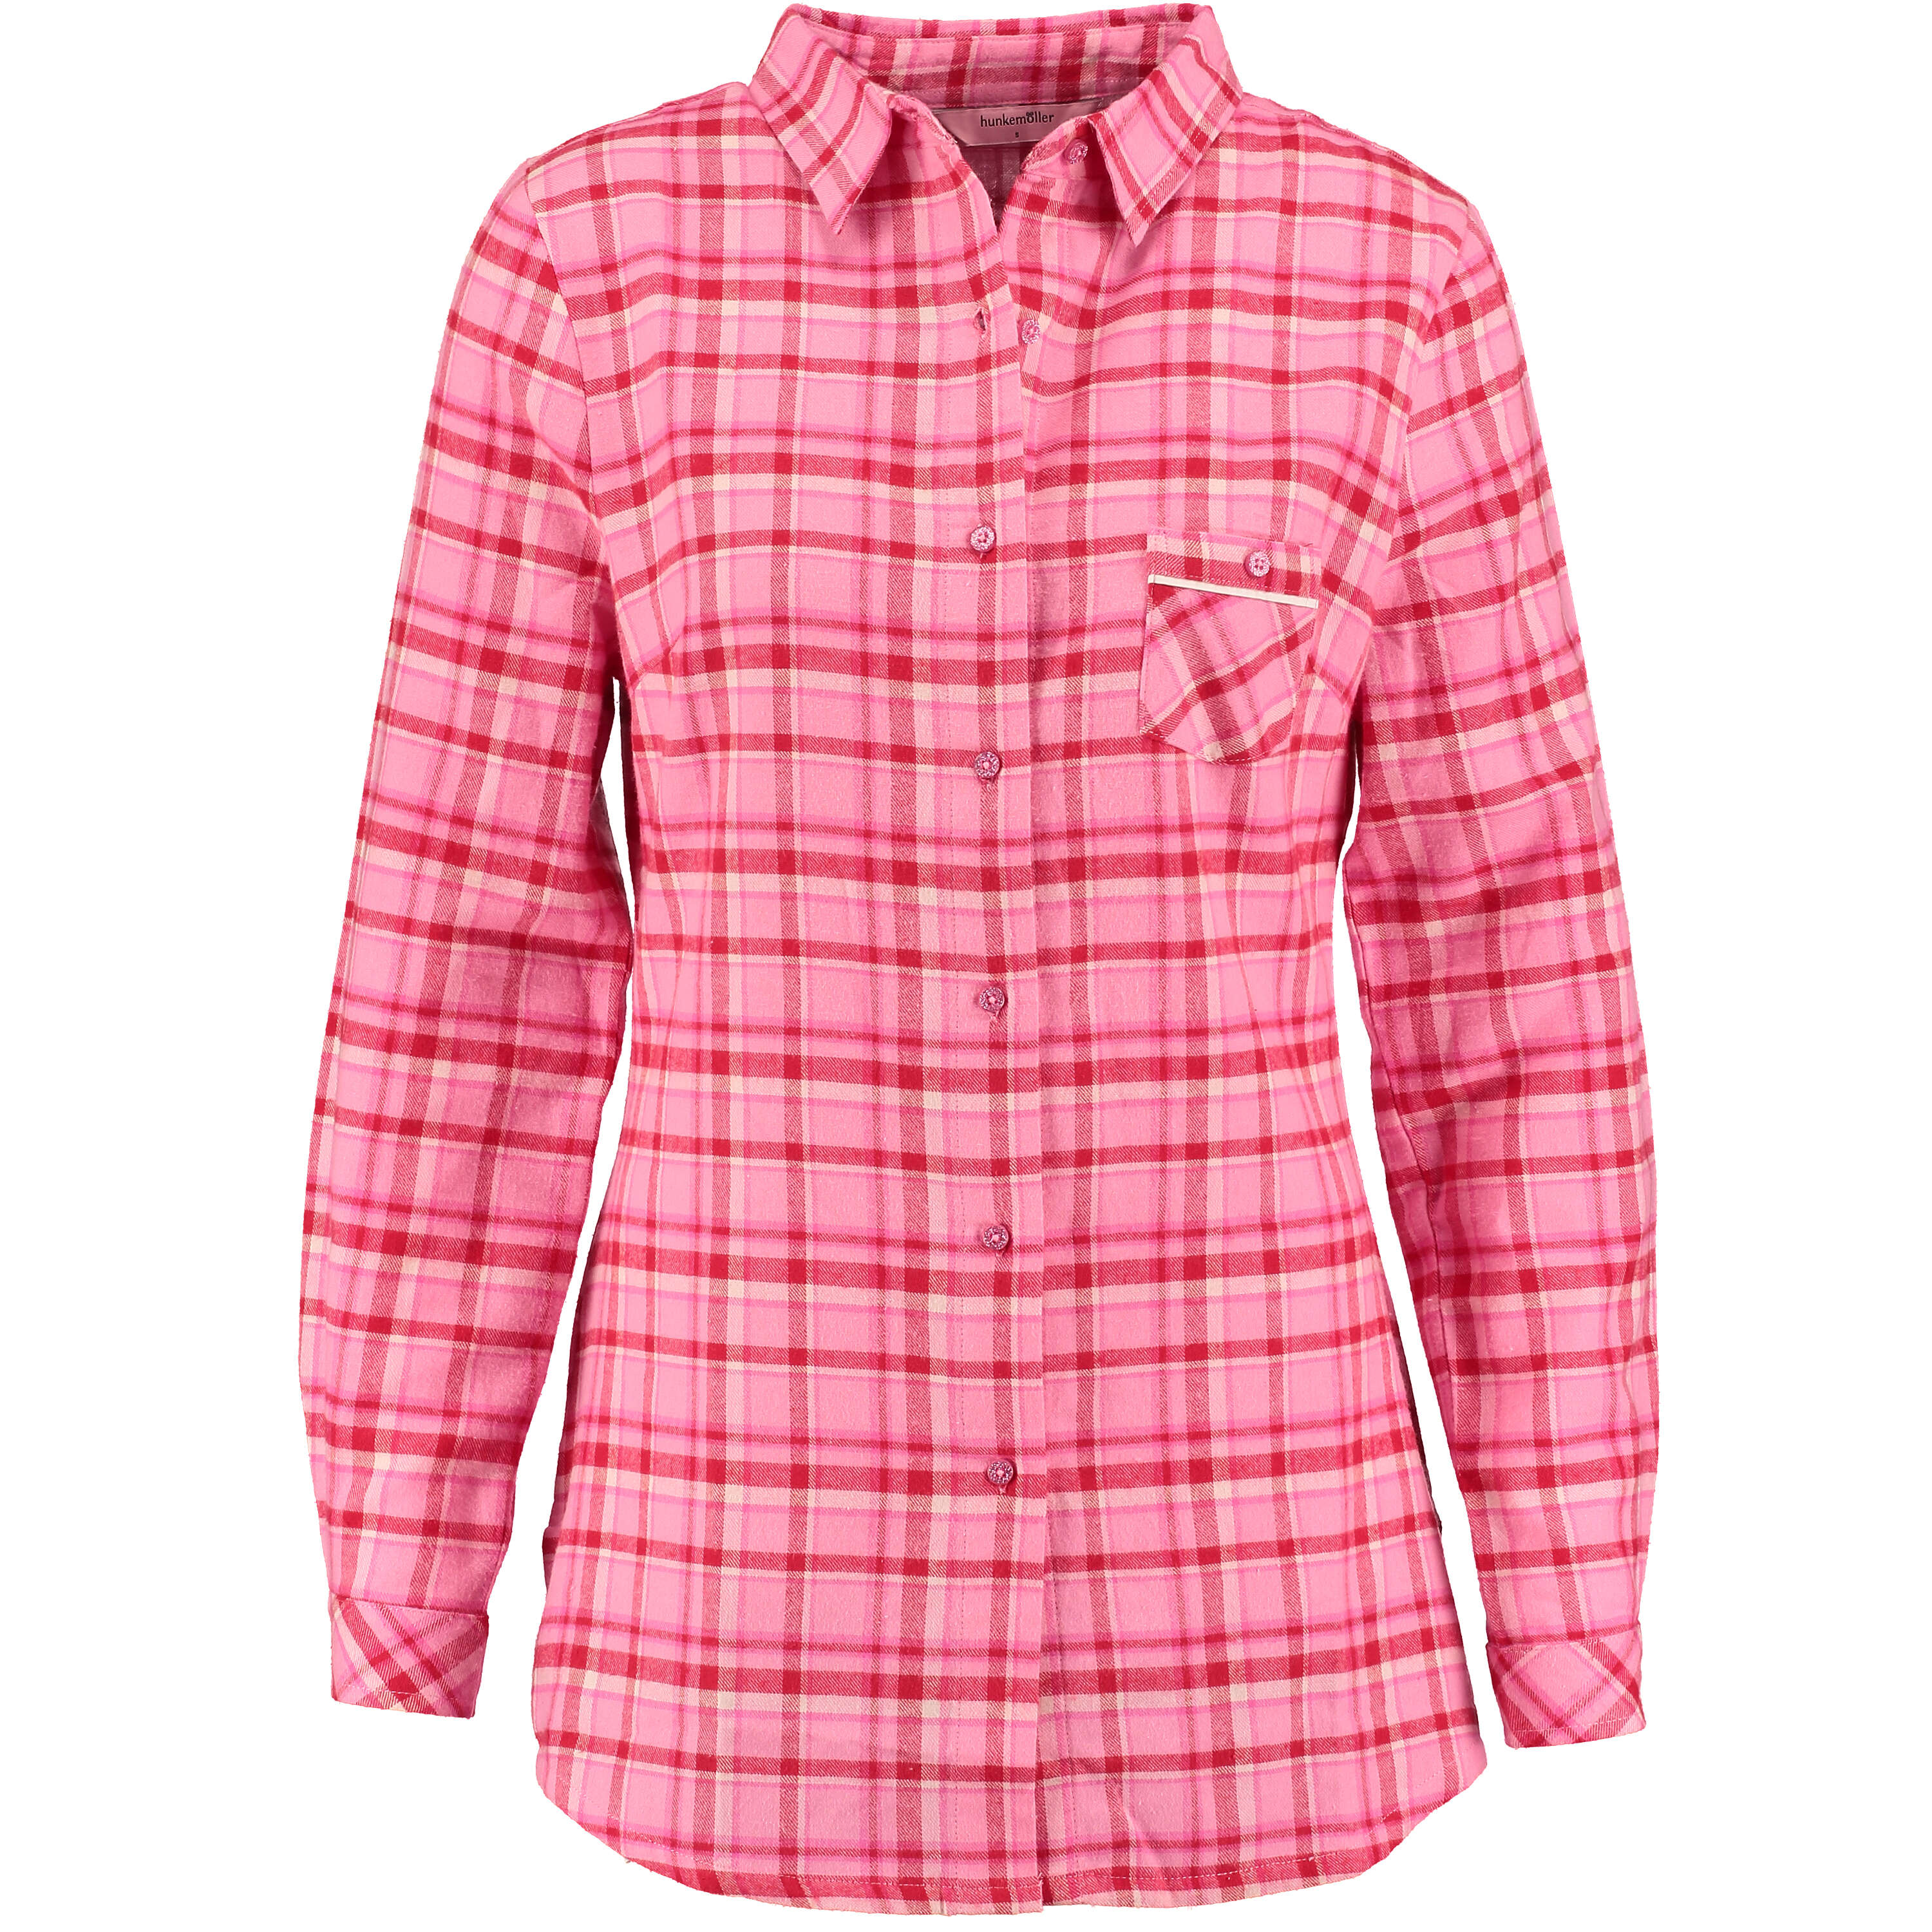 Nightshirt Caitlin, Red, main